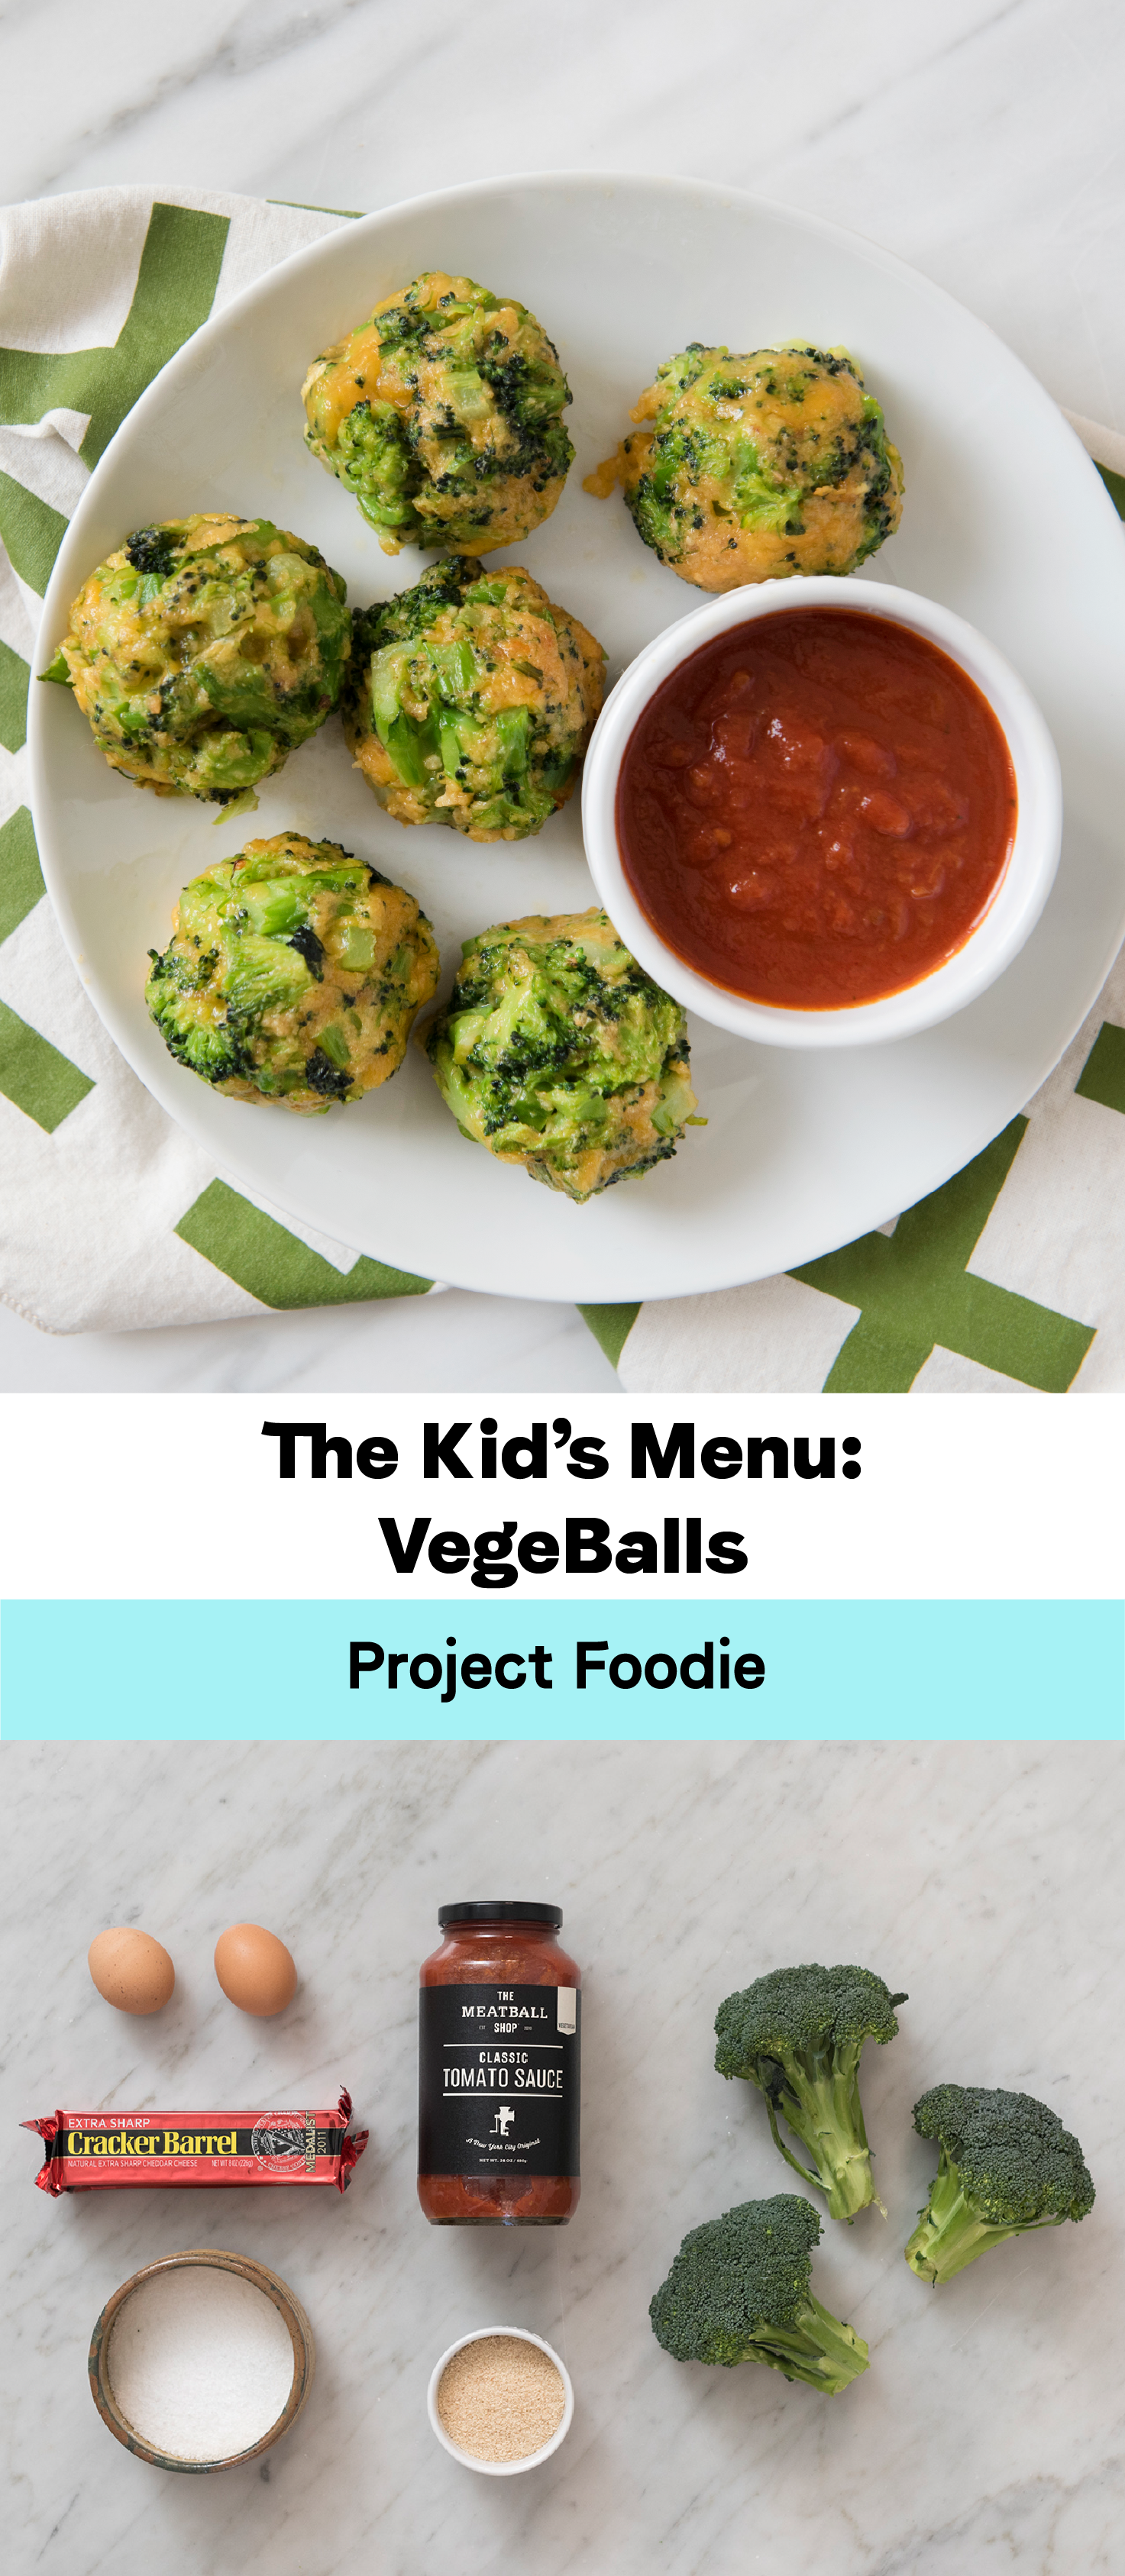 Broccoli Cheese Vegeballs